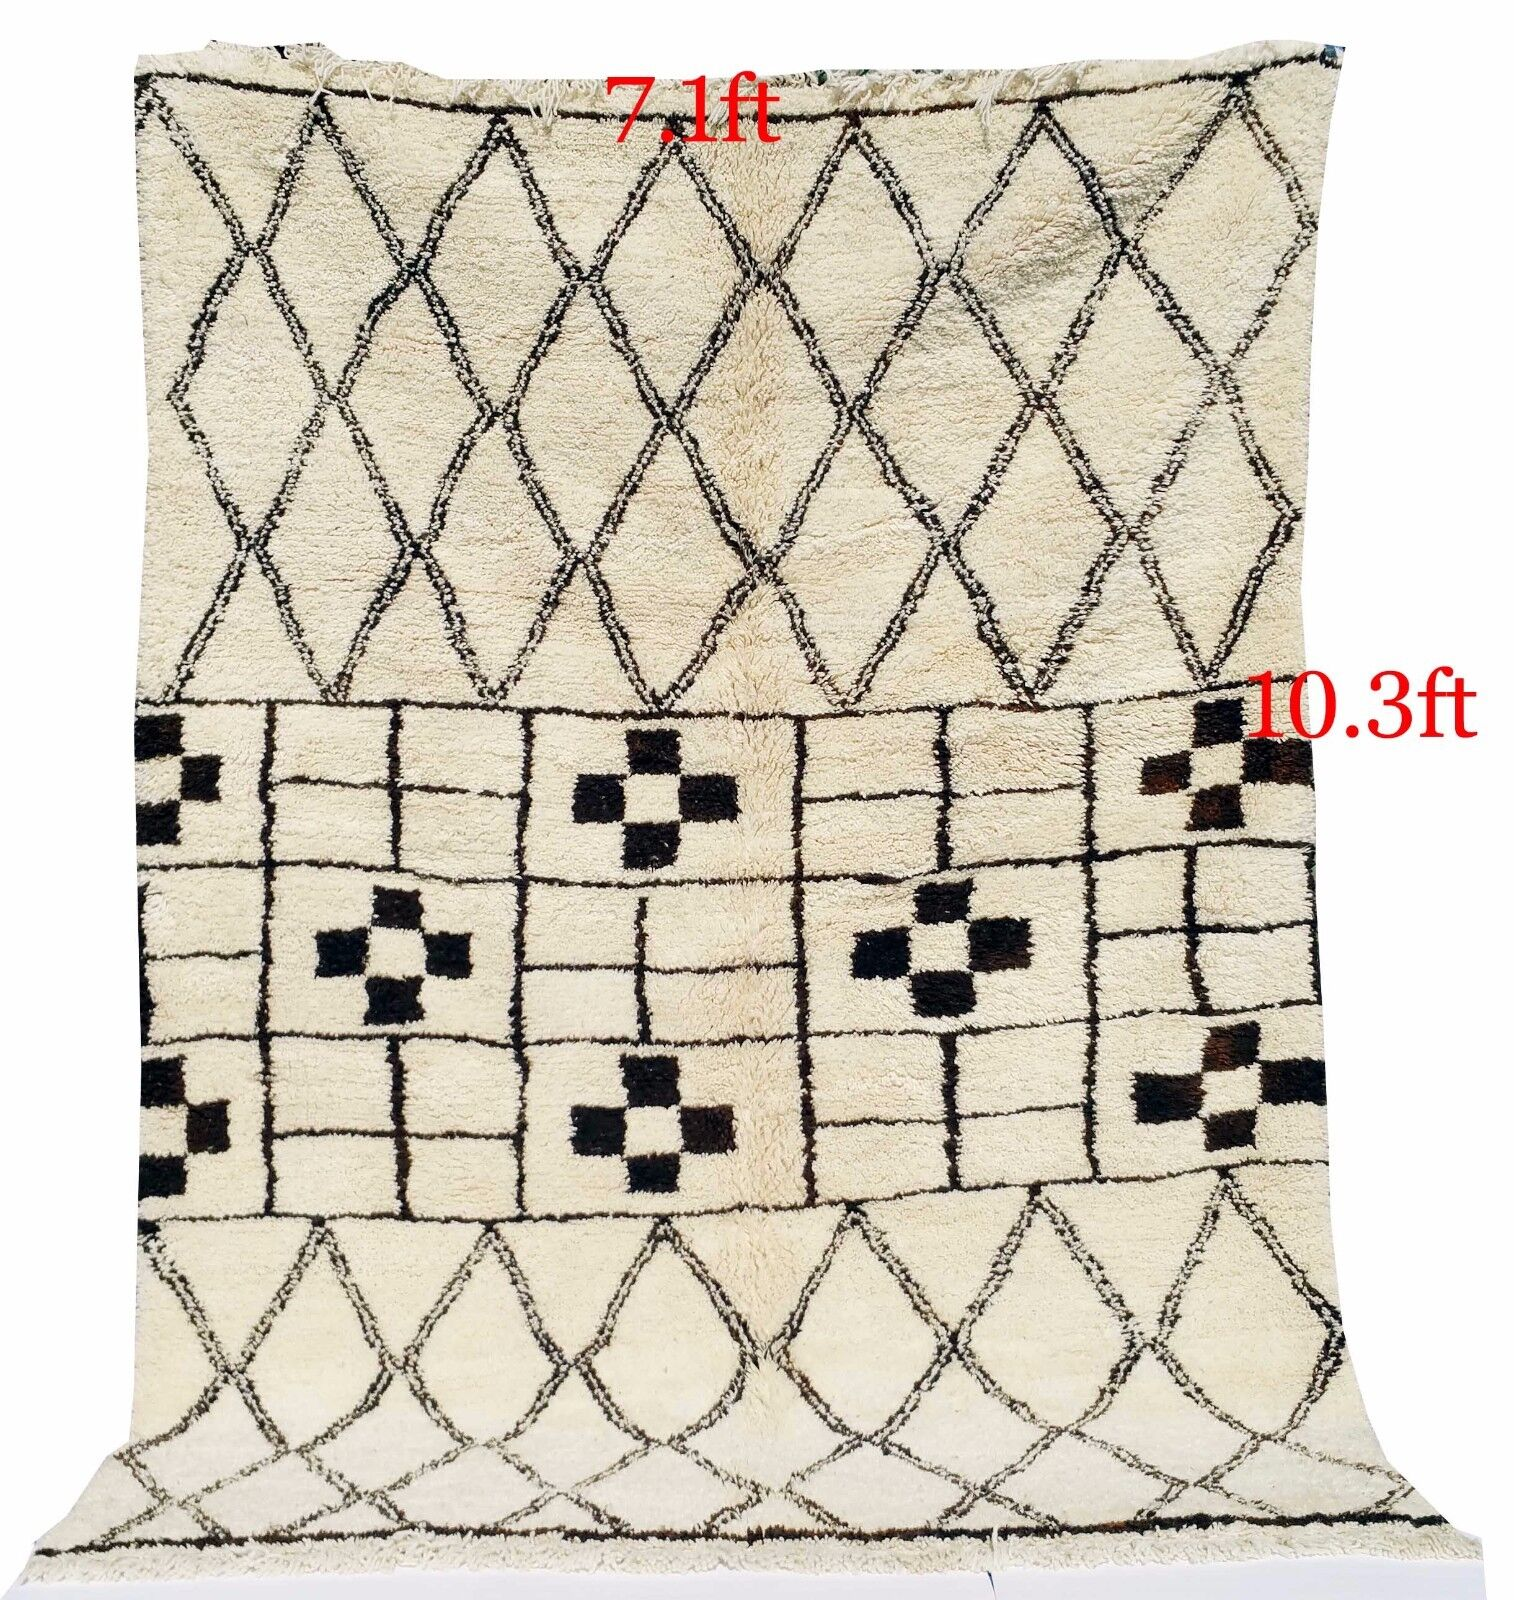 MGoldccan RUG  MGoldcco  Beni Ourain Ourain Ourain knotted carpet 100% Handmade 10.3ft x 7.1 ft 04dbf2